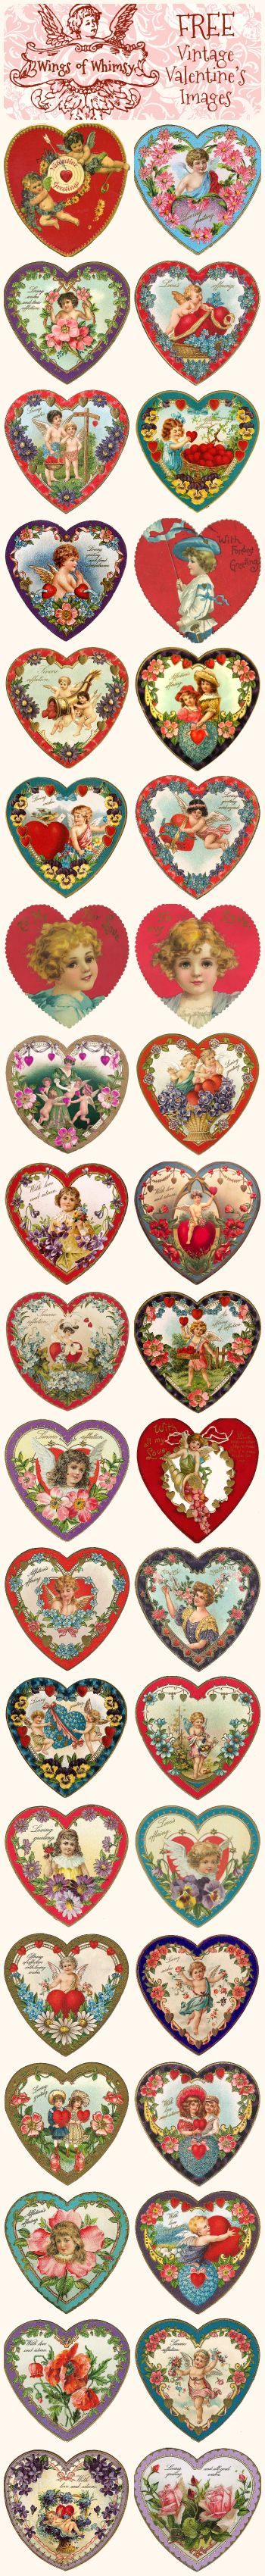 Wings of Whimsy: Valentine Hearts - free for personal use.